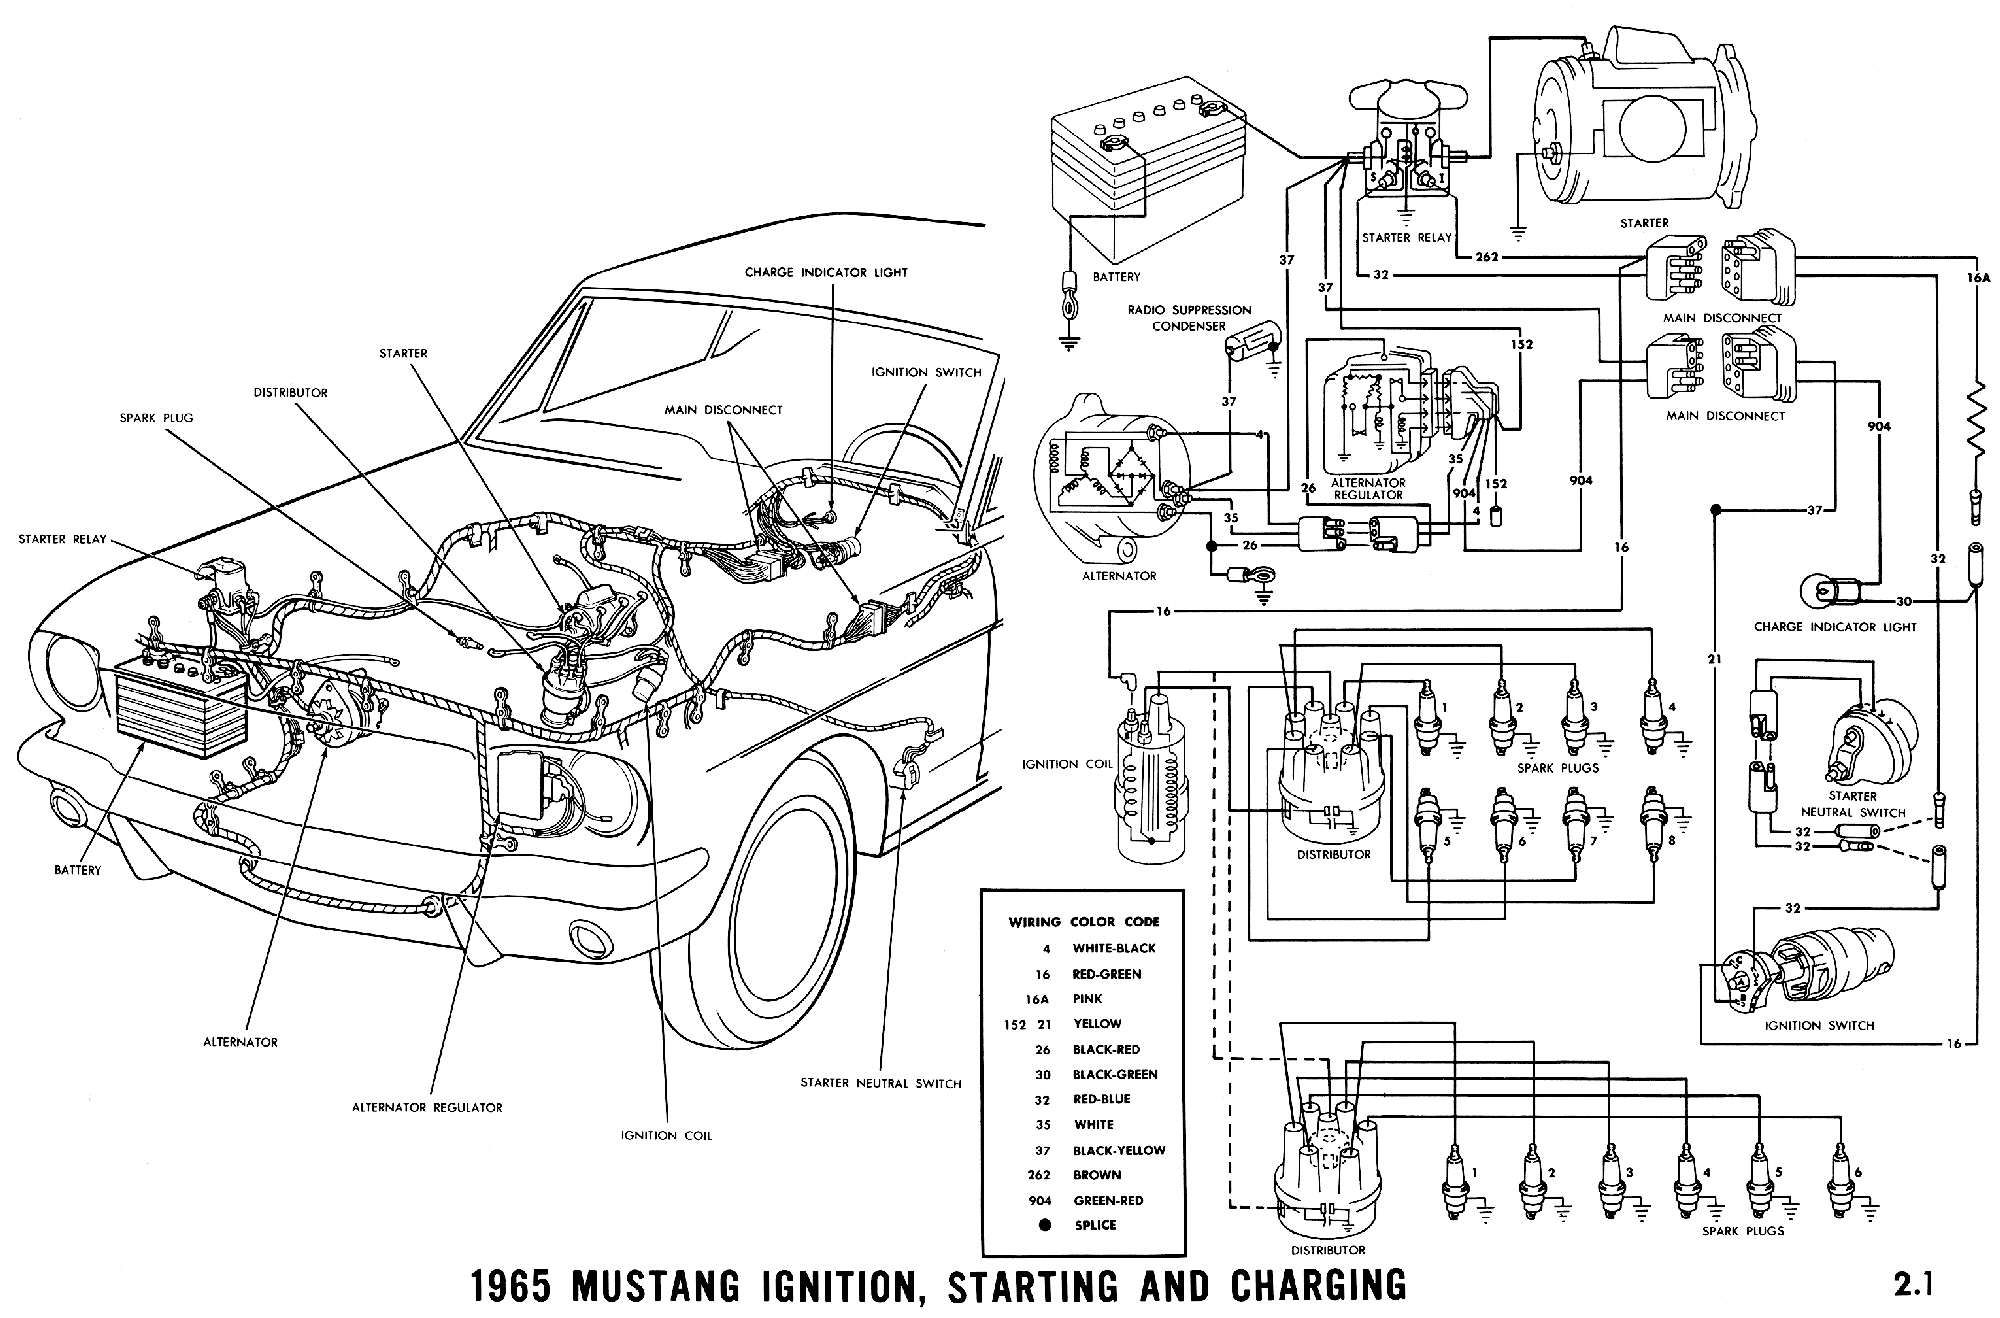 2b4c8d3809962afcbebfb7e8a60704ce 1965 mustang wiring diagrams average joe restoration mustang Ford Alternator Wiring Diagram at cos-gaming.co